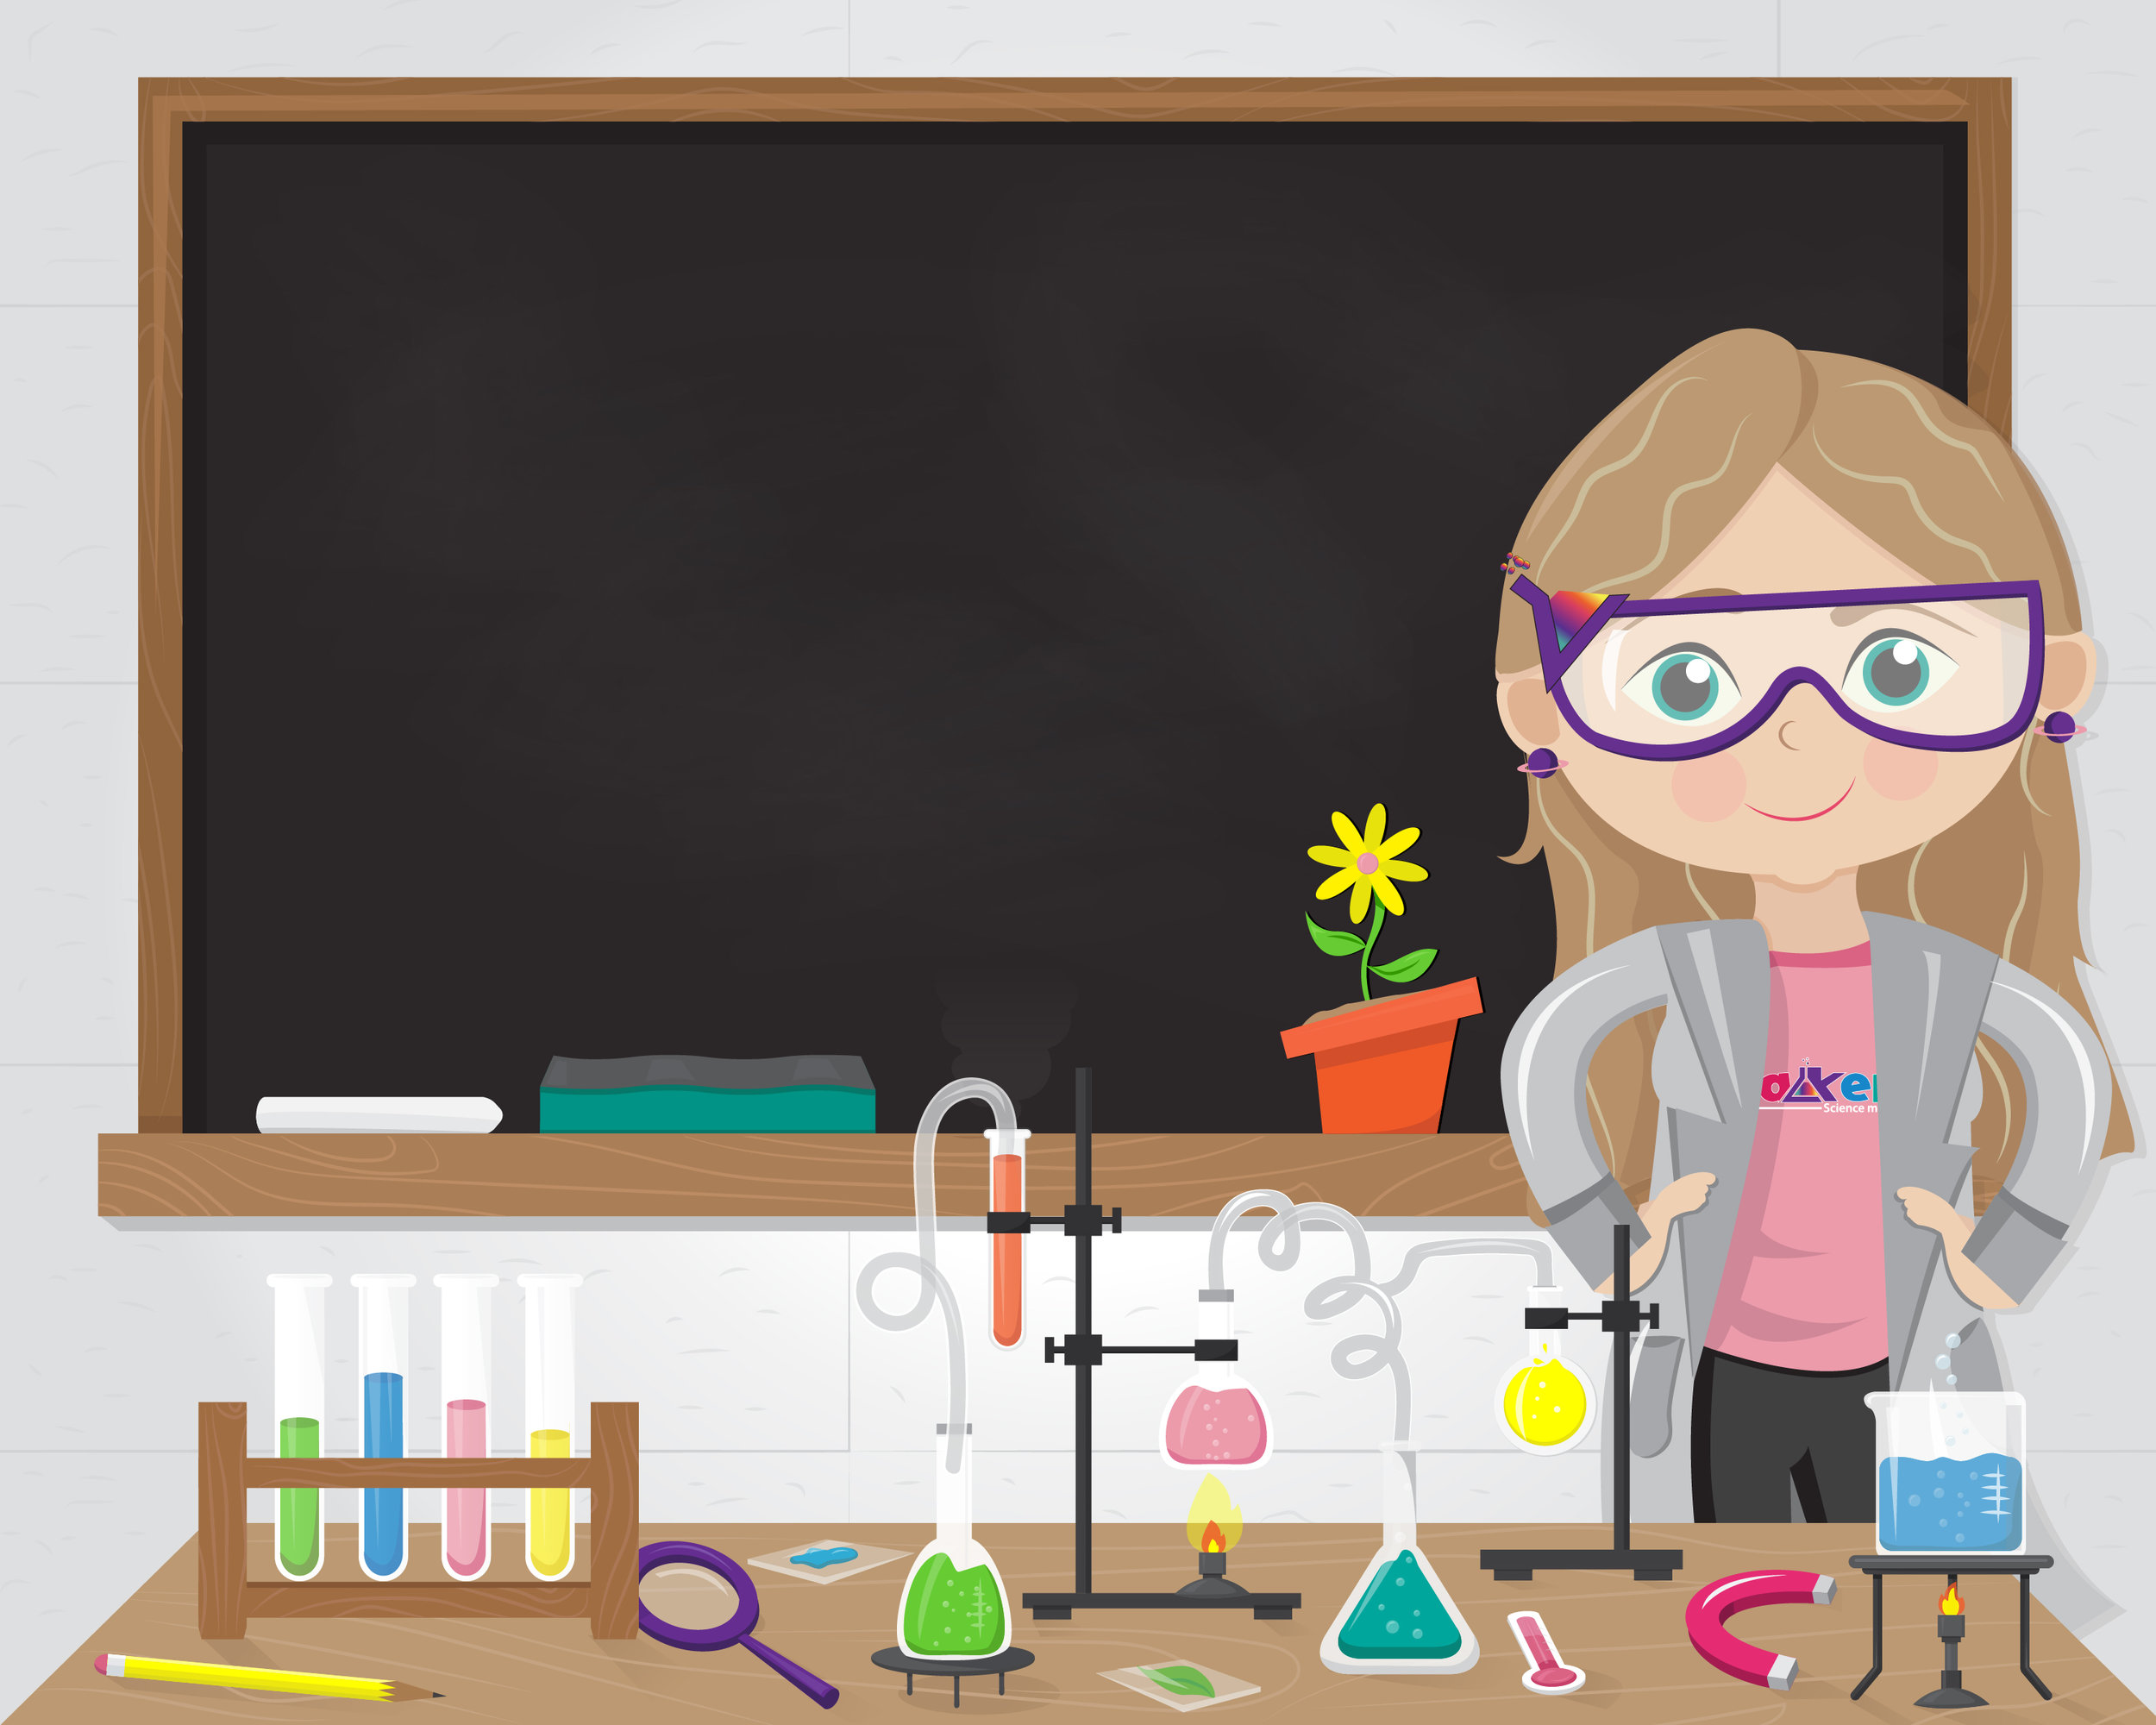 ILLUSTRATION FOR SUBSCRIPTION BOX SERIES OF SCIENCE PROJECTS